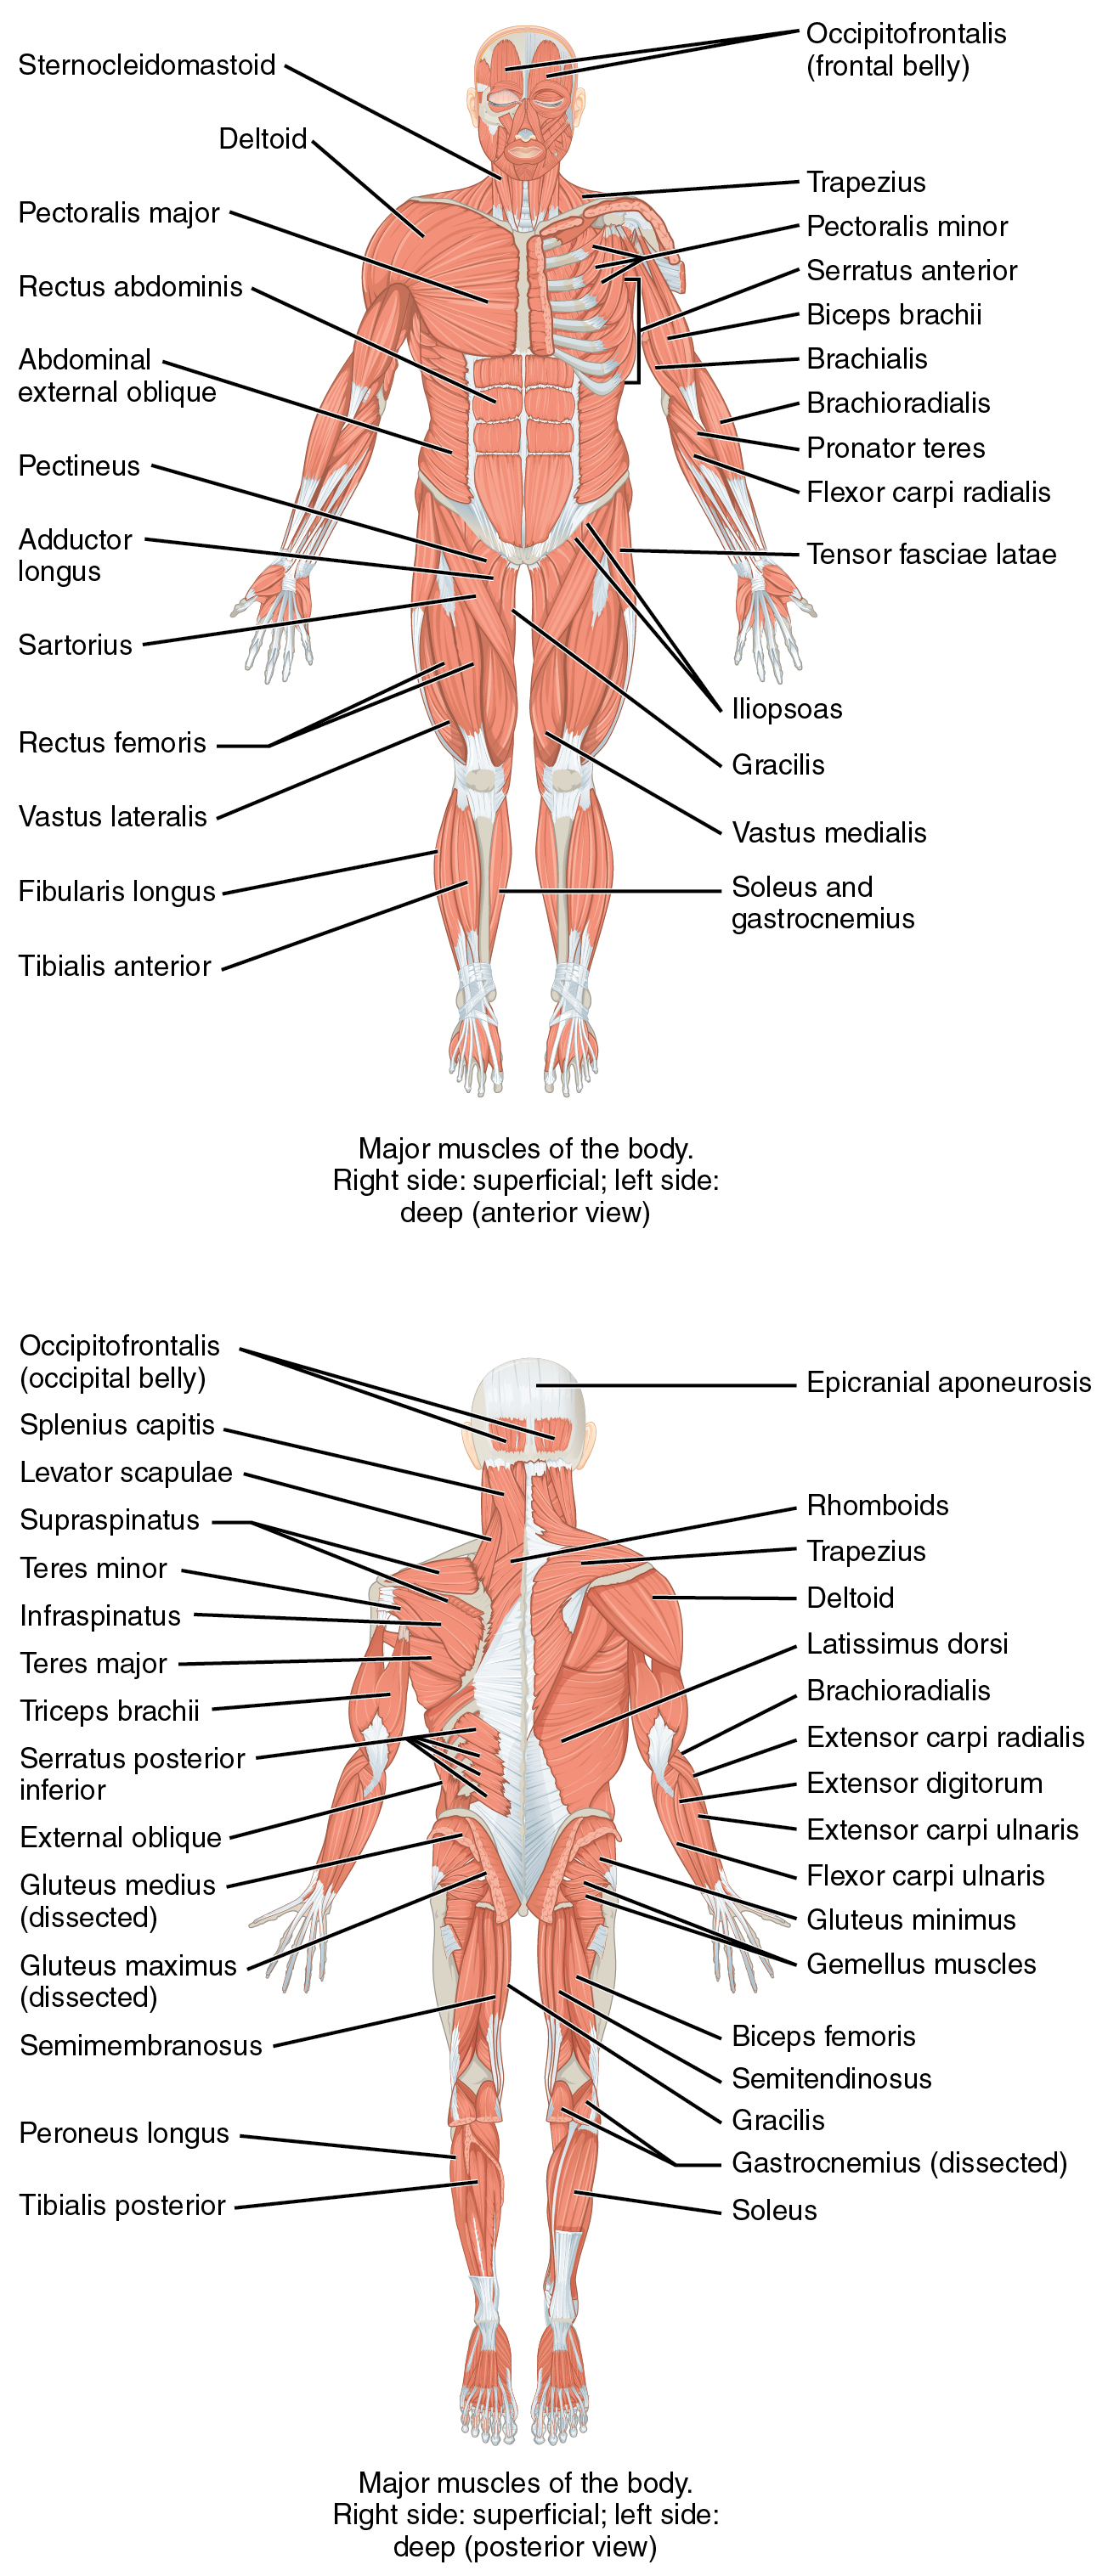 hight resolution of file 1105 anterior and posterior views of muscles jpg